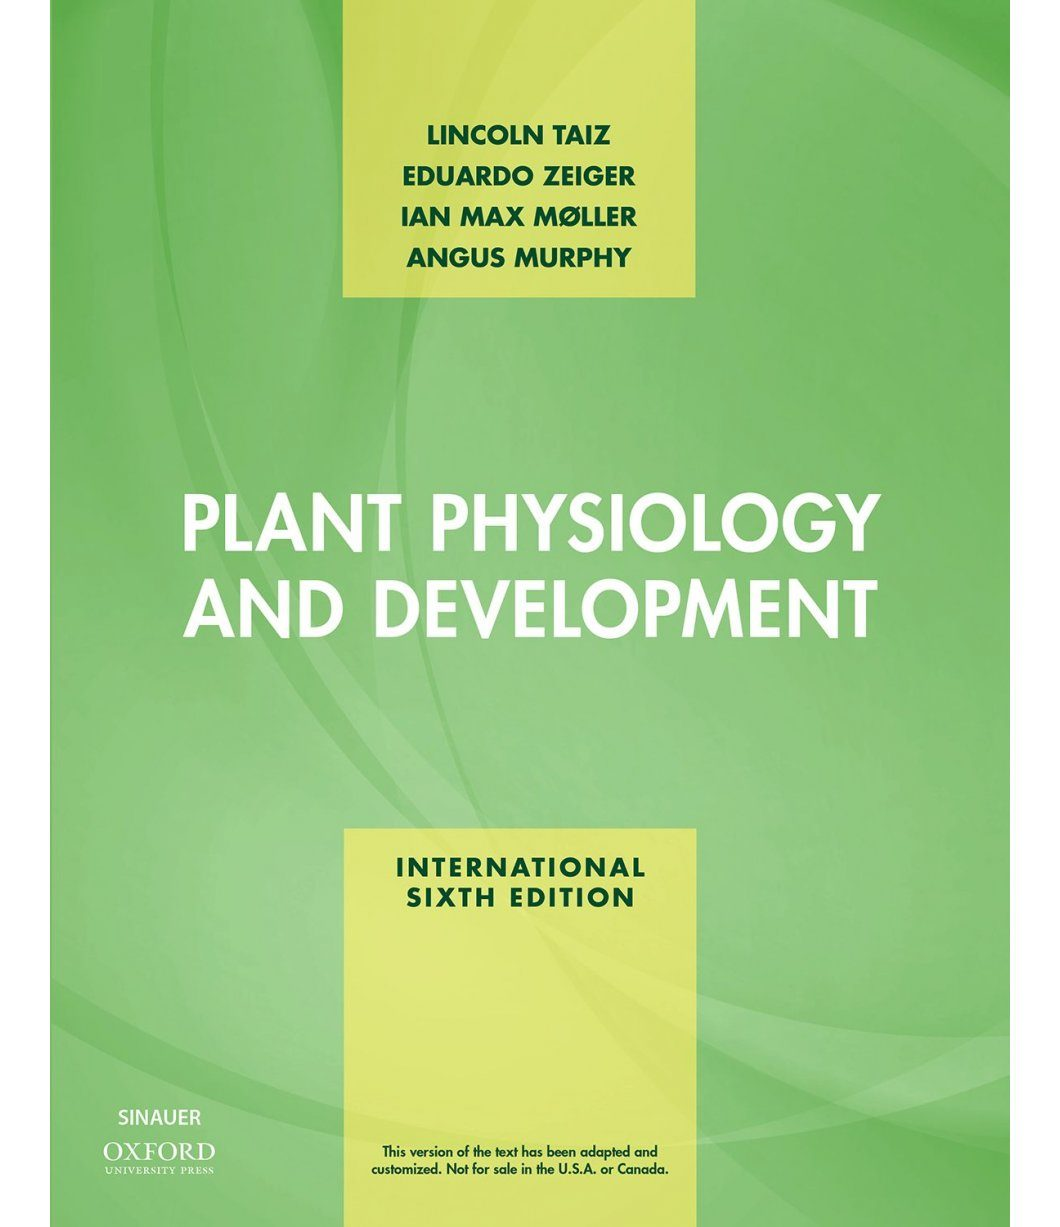 Plant Physiology and Development (International Edition)